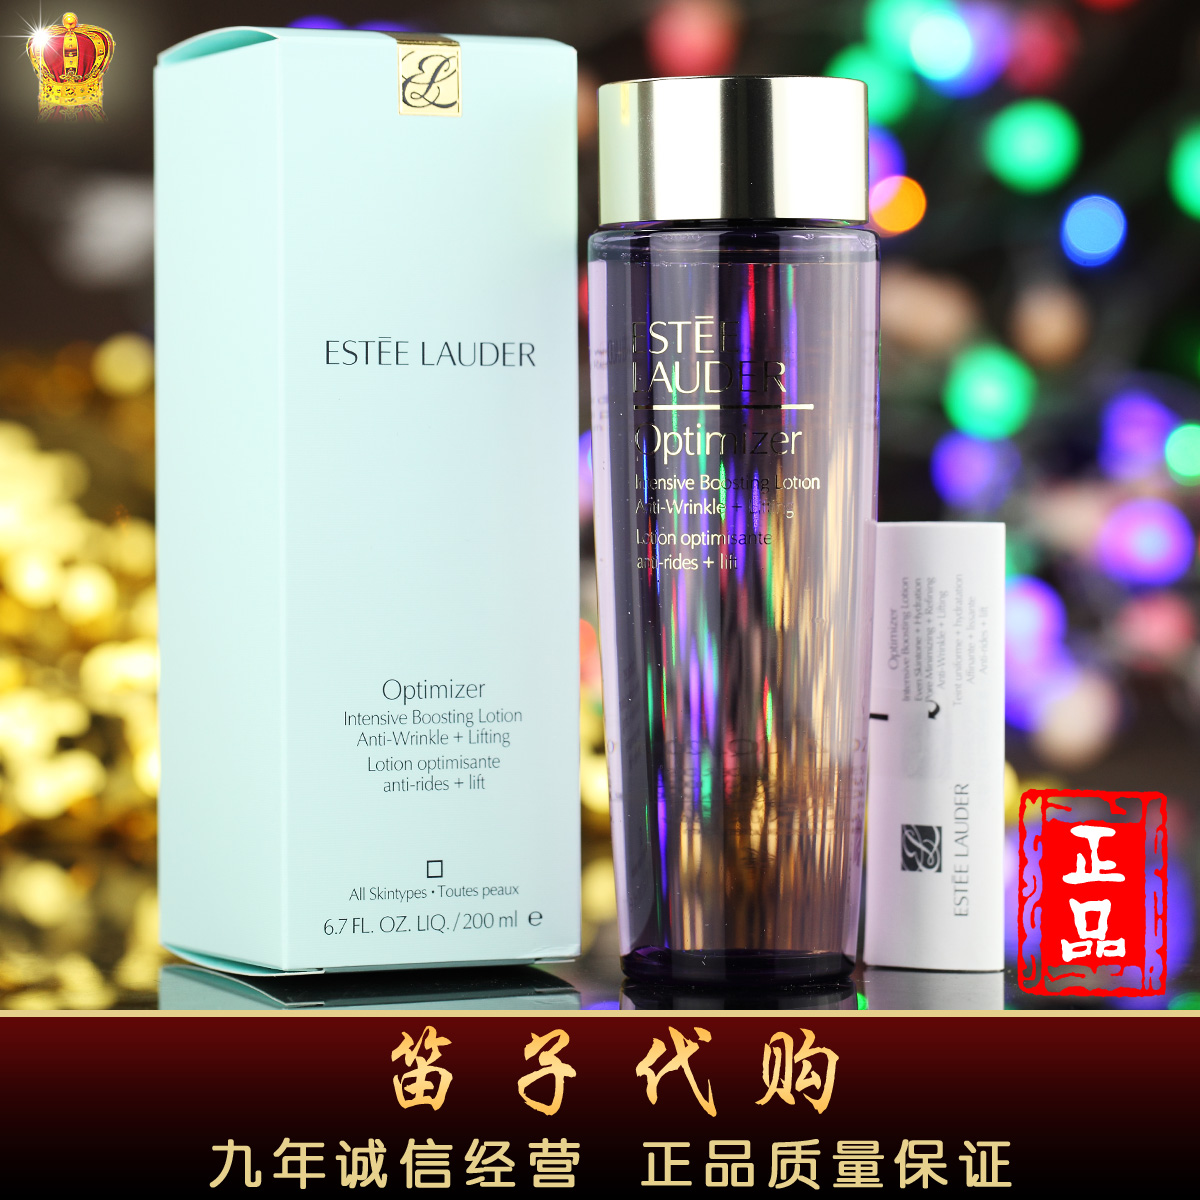 Лосьон/лосьон Estee Lauder  200ML недорого